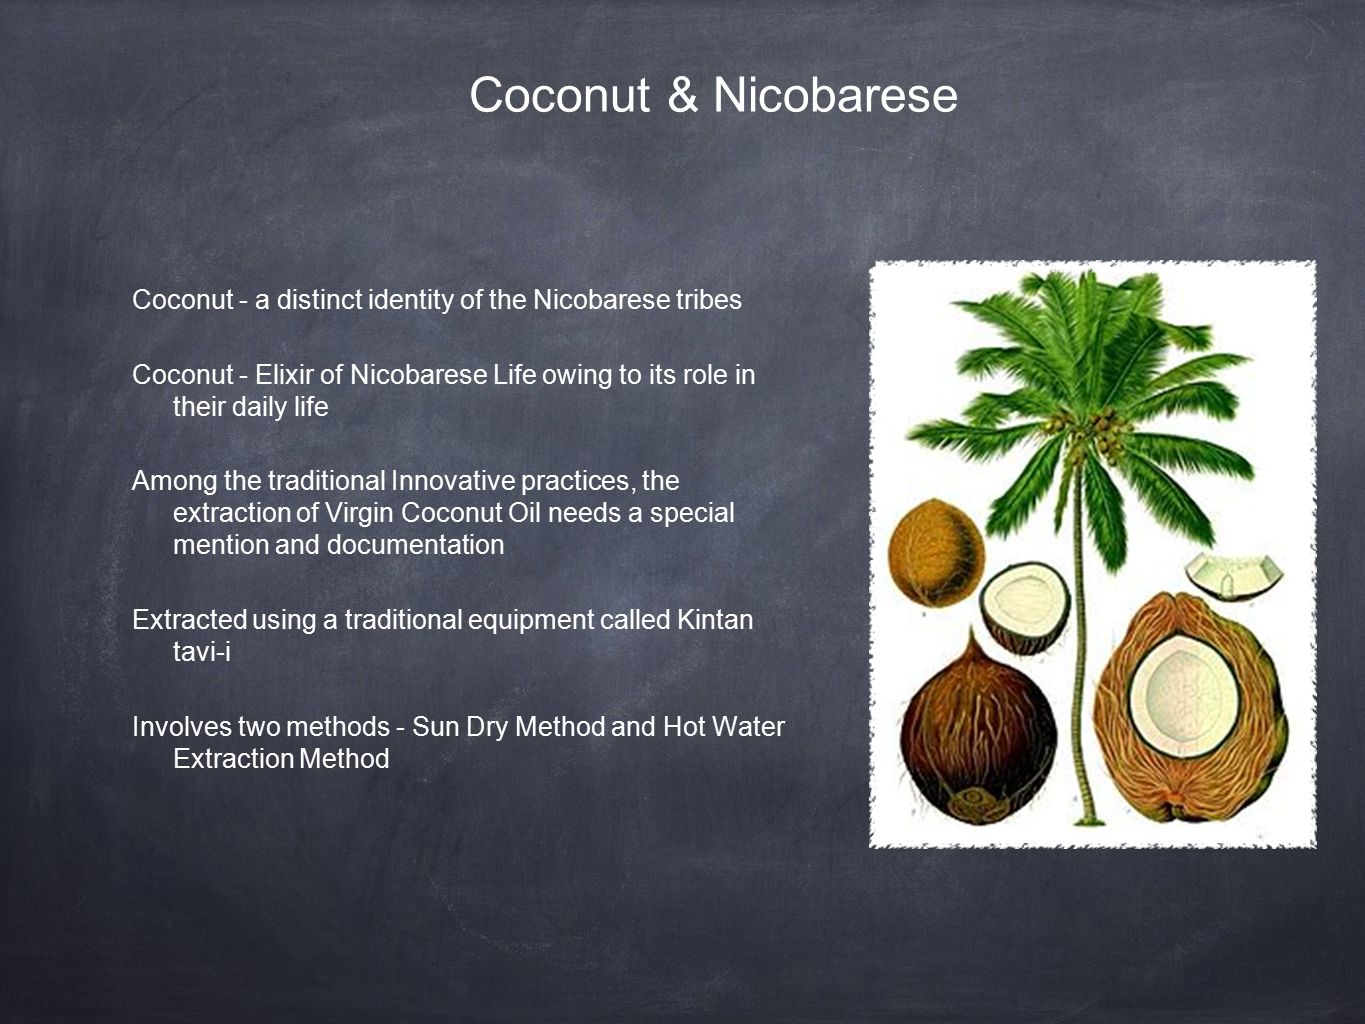 Coconut & Nicobarese Coconut - a distinct identity of the Nicobarese tribes Coconut - Elixir of Nicobarese Life owing to its role in their daily life Among the traditional Innovative practices, the extraction of Virgin Coconut Oil needs a special mention and documentation Extracted using a traditional equipment called Kintan tavi-i Involves two methods - Sun Dry Method and Hot Water Extraction Method